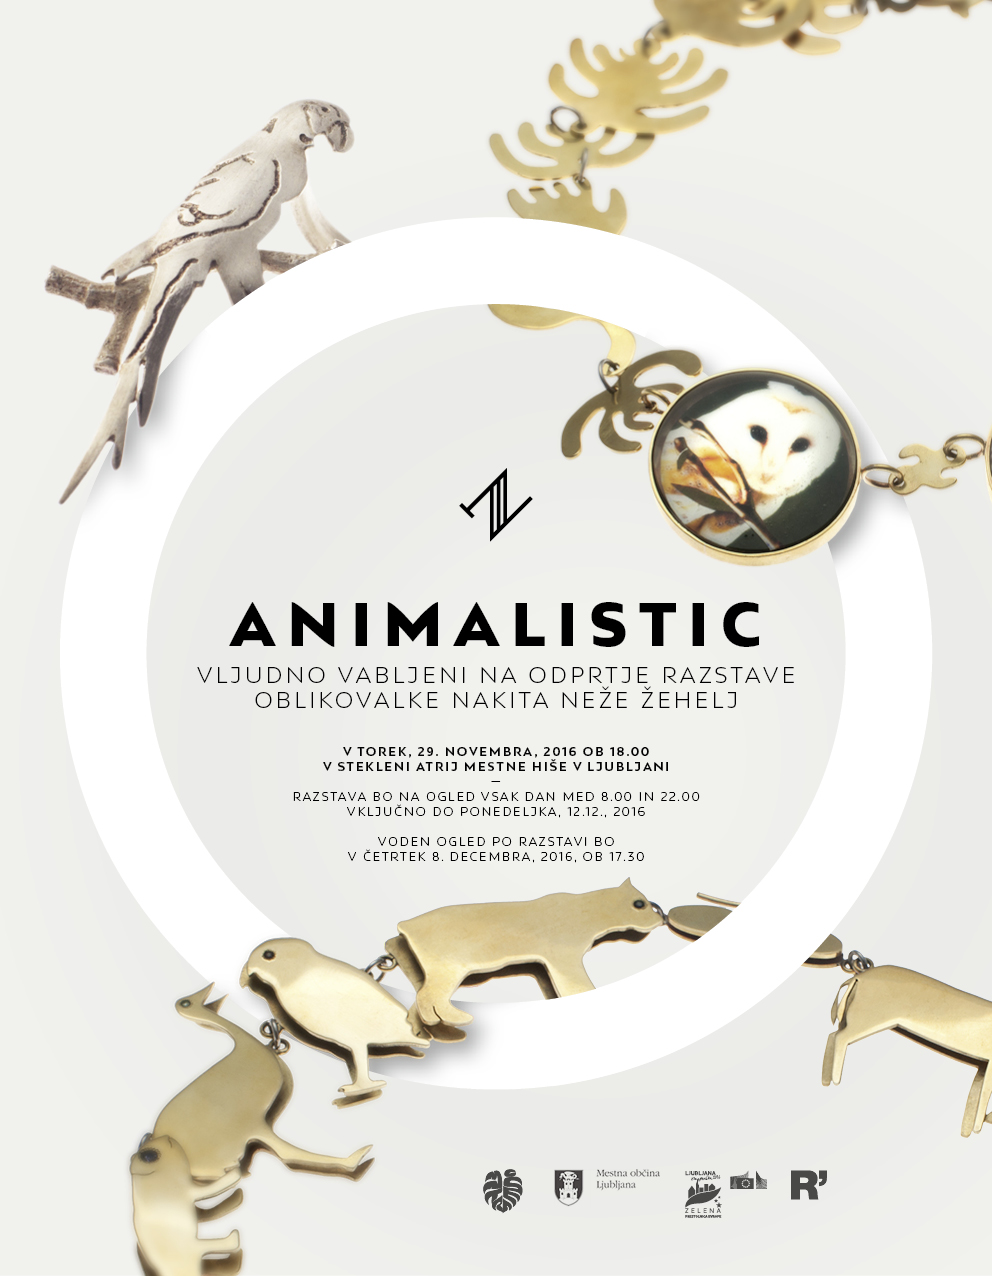 Animalistic - Solo exhibition show / Ljubljana's town hall gallery 29. November - 12. December / Ljubljana / Slovenia